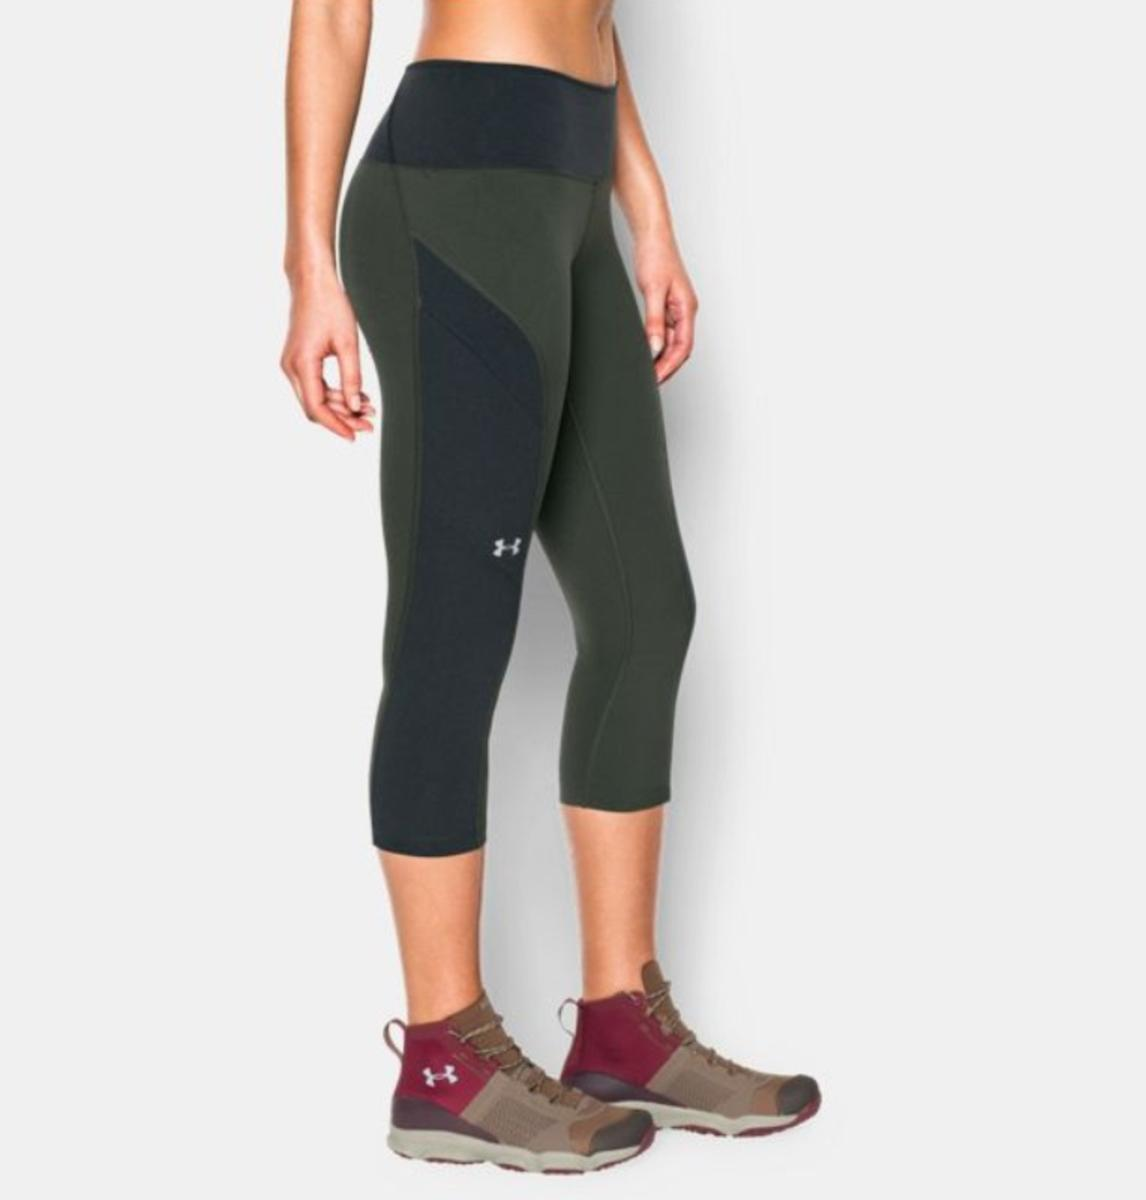 51f81c2a6dd9dd Under Armour Women's UA ArmourVent Trail Capri - The Warming Store